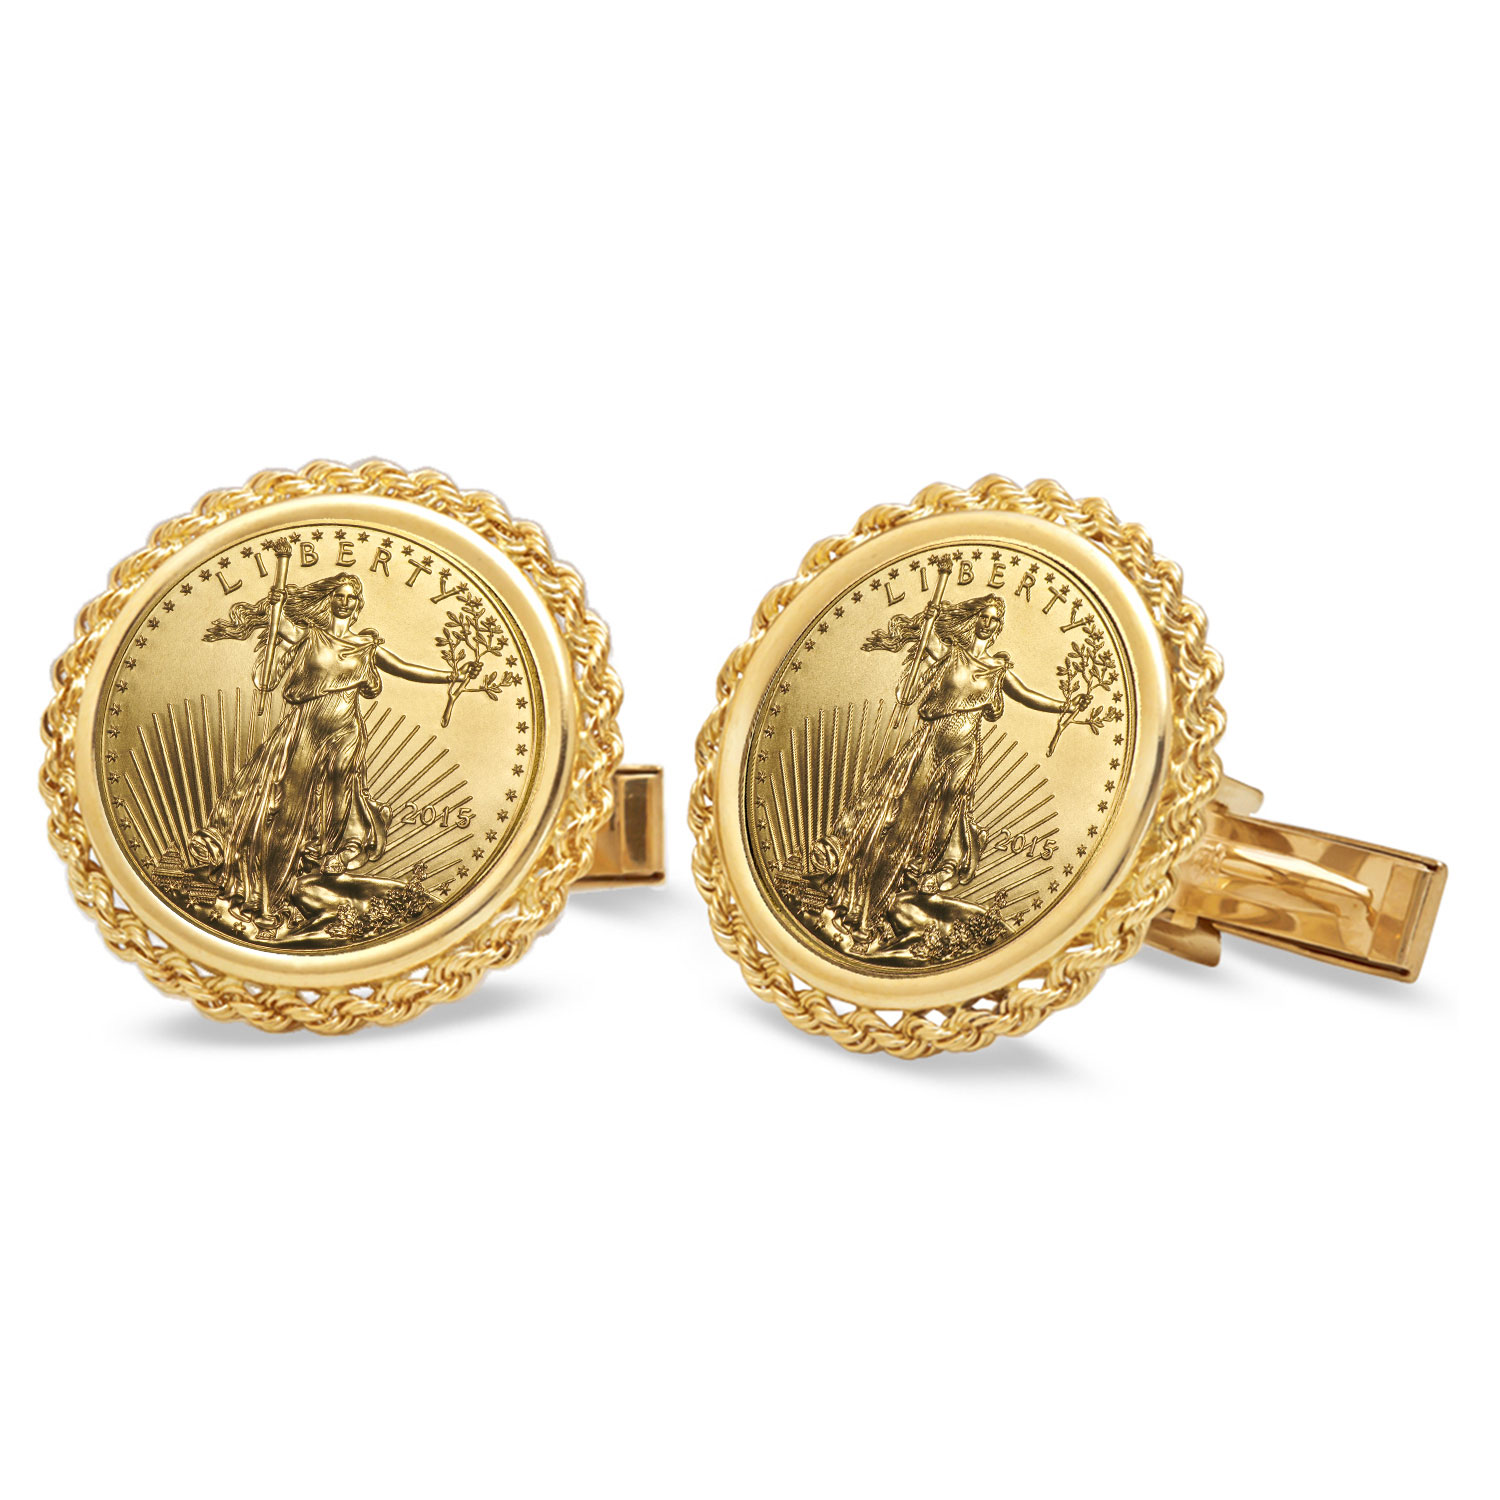 2015 1/10-oz Gold Eagle Cuff Links (Polished Rope)